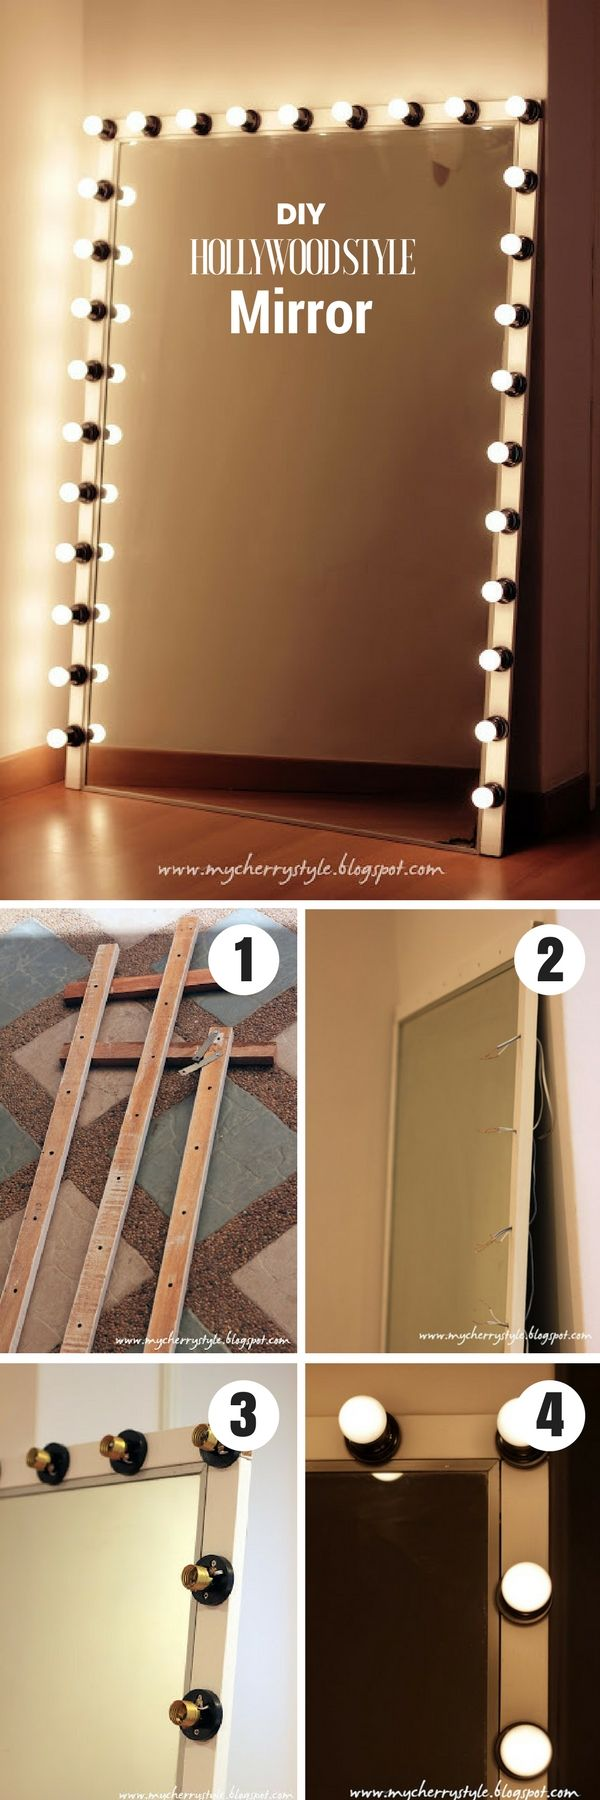 Check out how to make this DIY Hollywood style mirror with lights @istandardesign